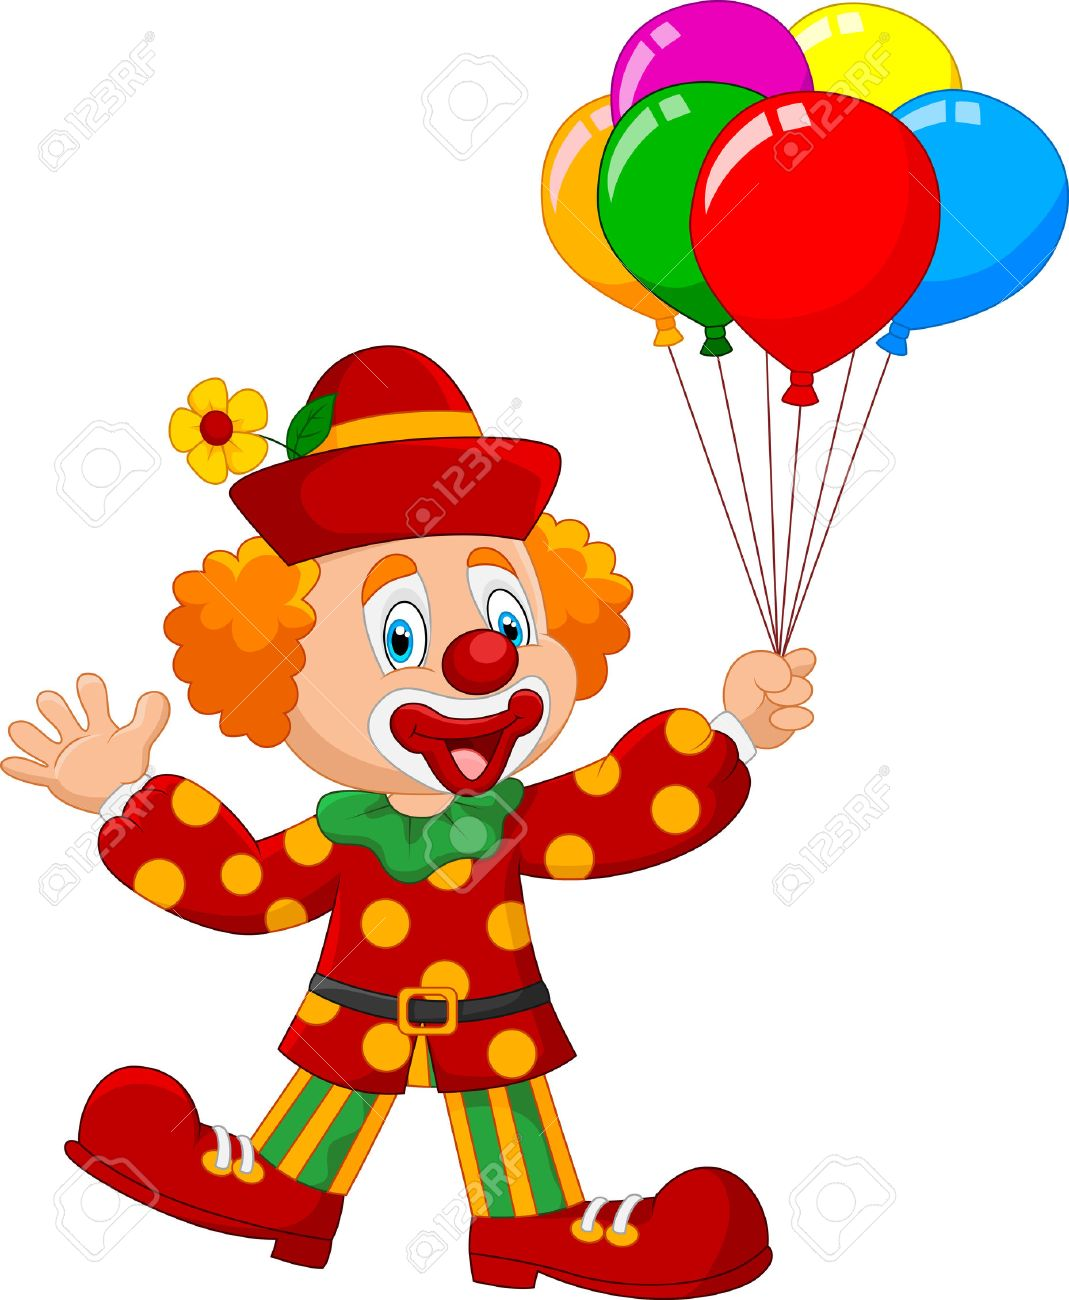 Image Clown illustration of adorable clown holding colorful balloon isolated